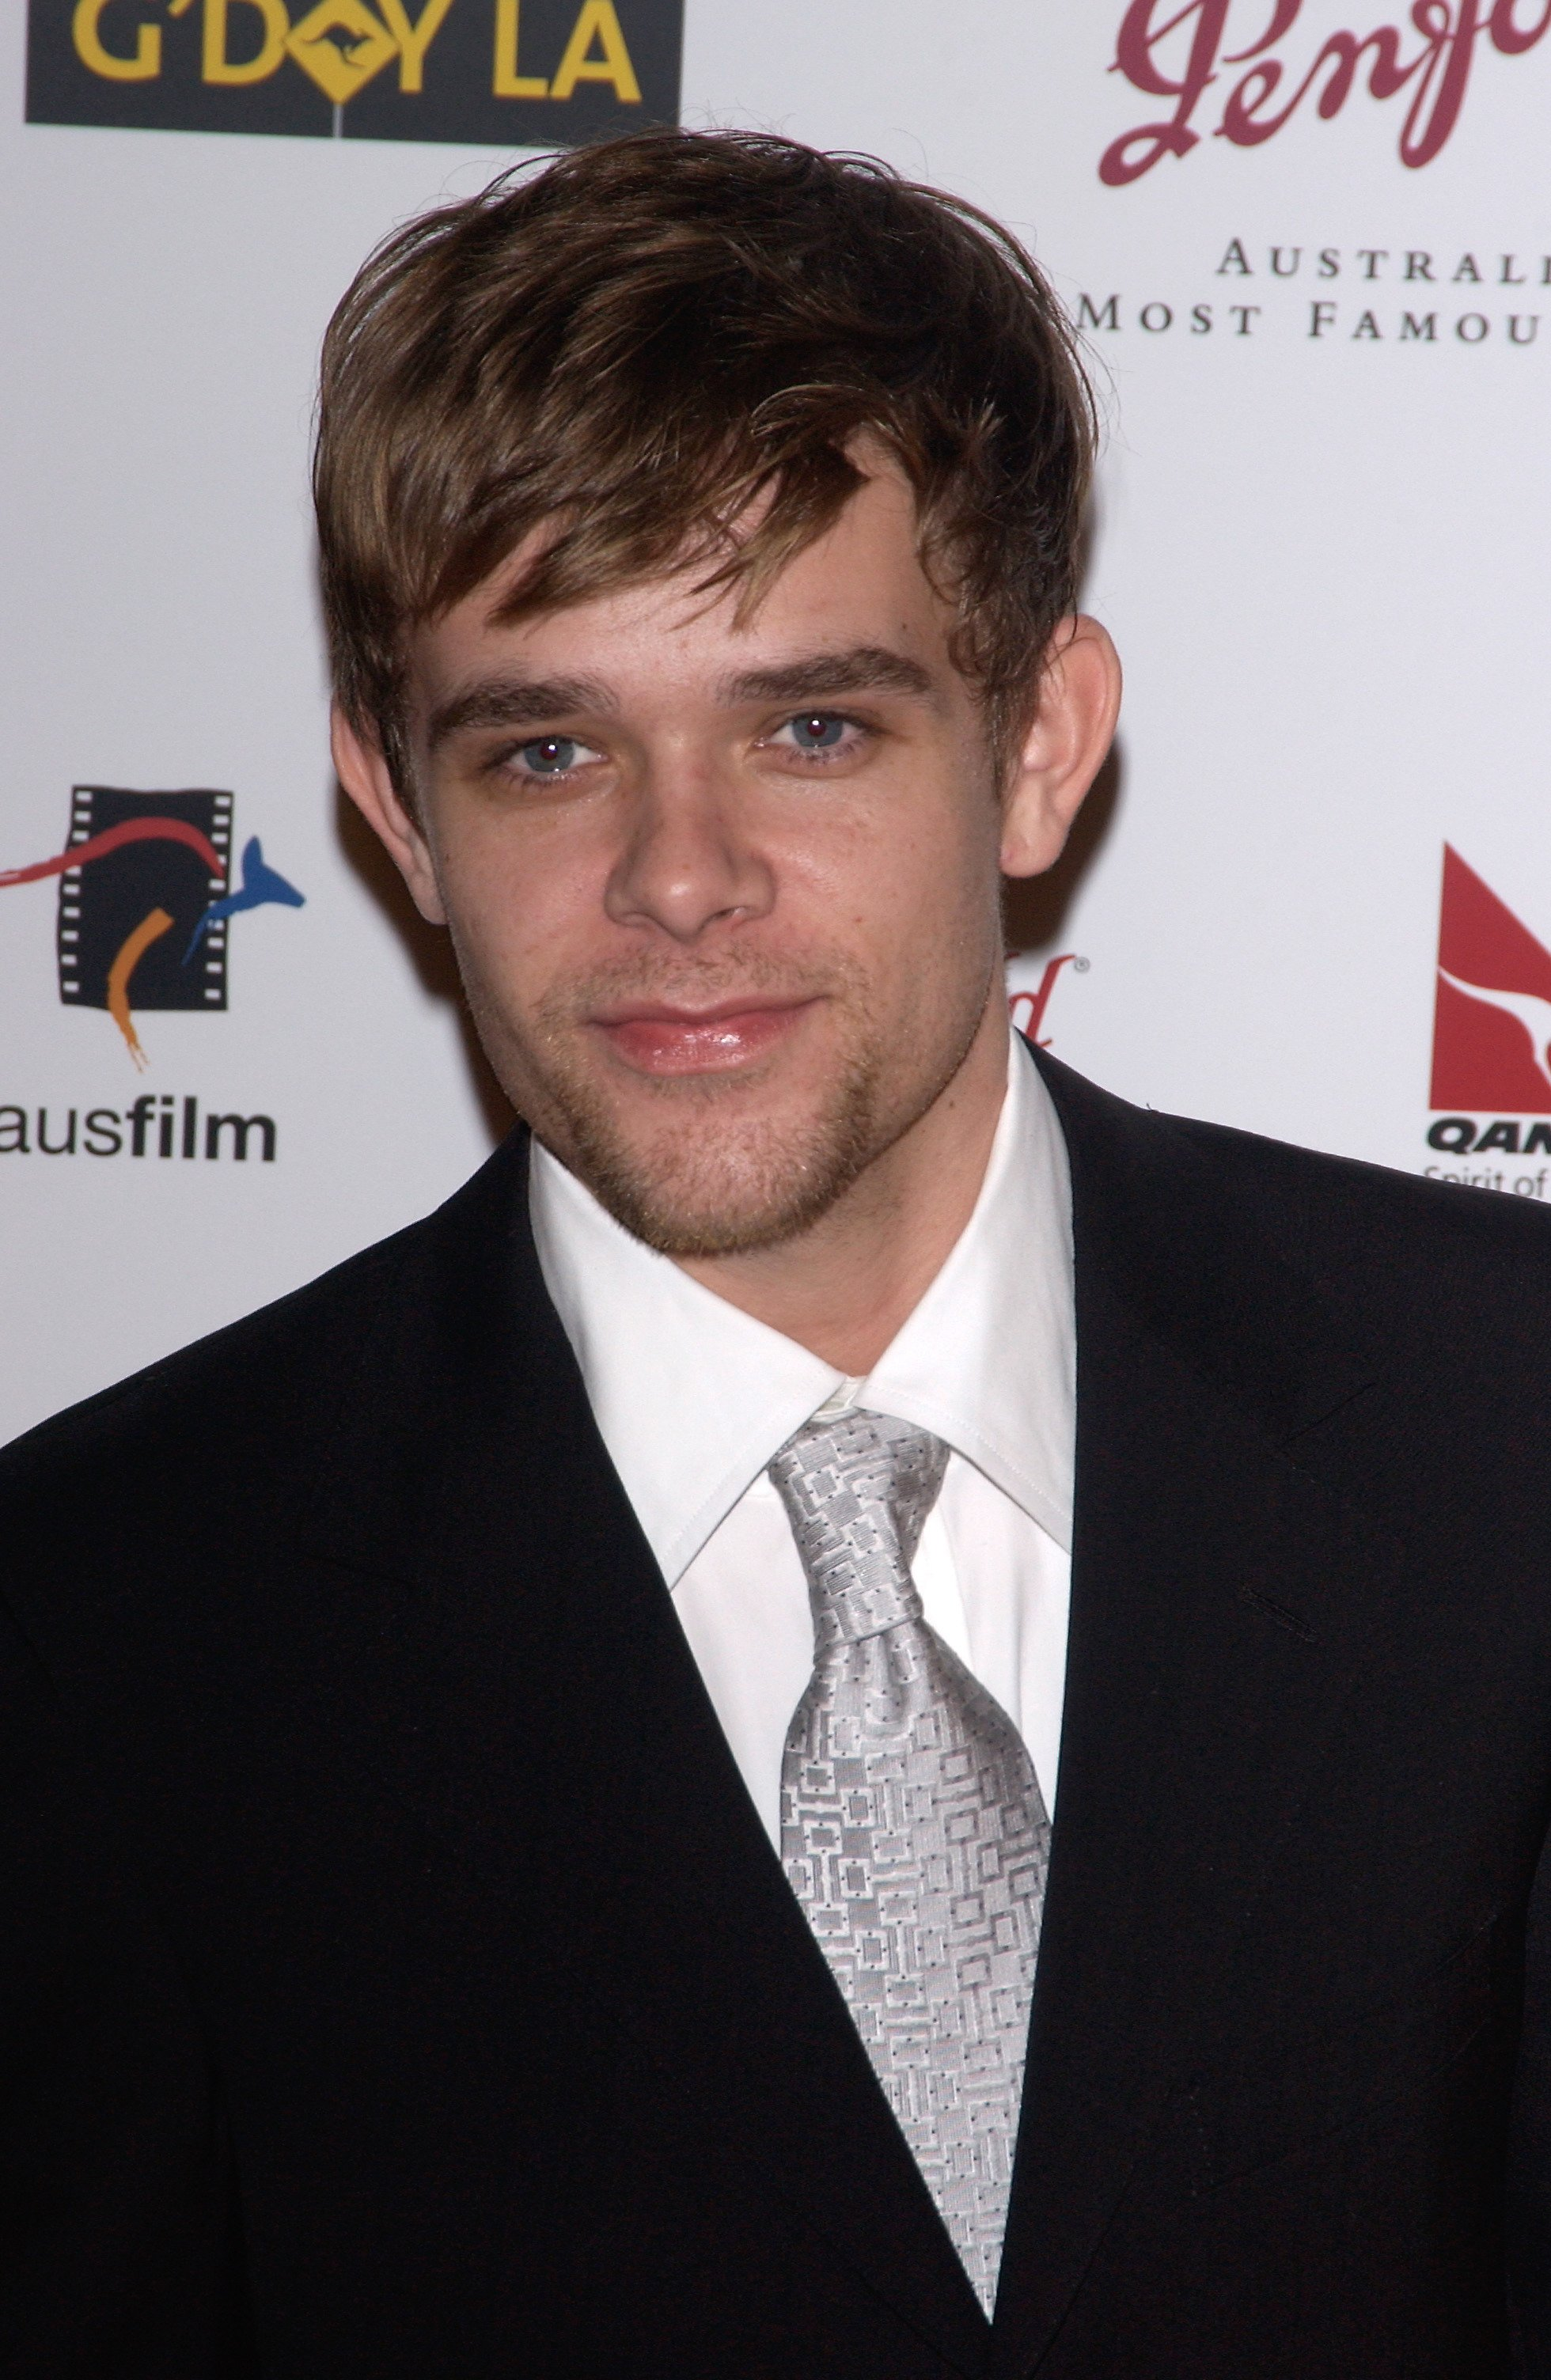 Nick Stahl at the G'Day LA Penfolds Gala on January 15, 2005 in Los Angeles, California | Photo: Shutterstock